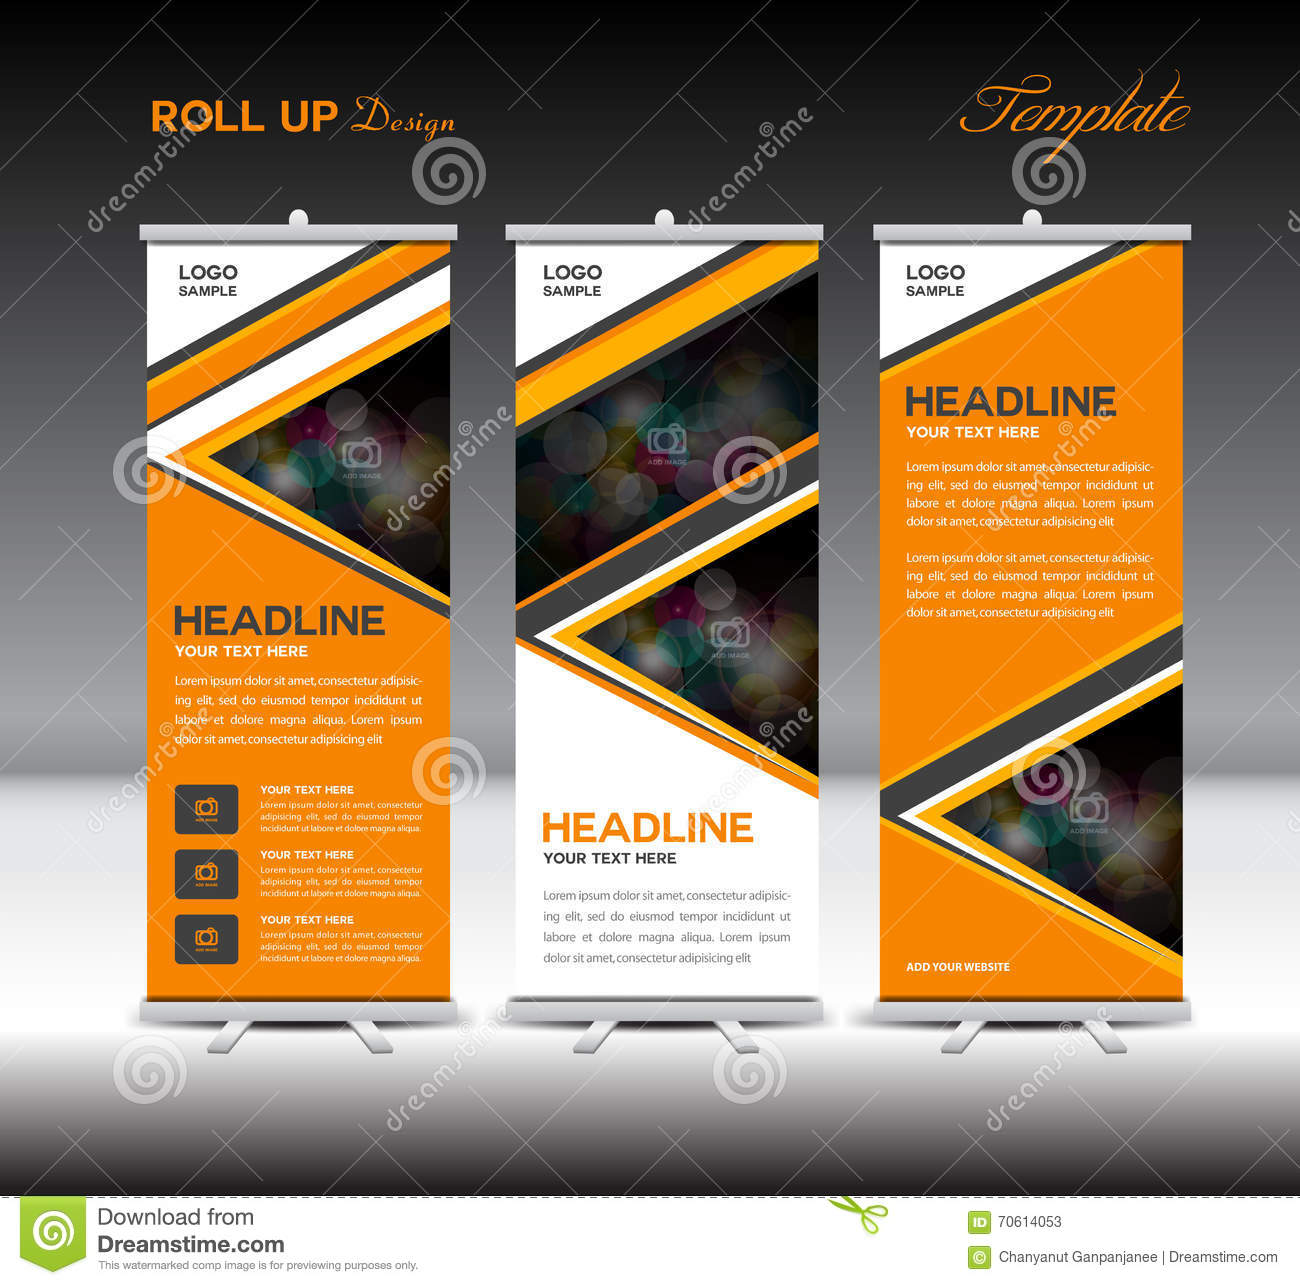 orange up banner template stand template advertisement vector la orange up banner template stand template advertisement vector la